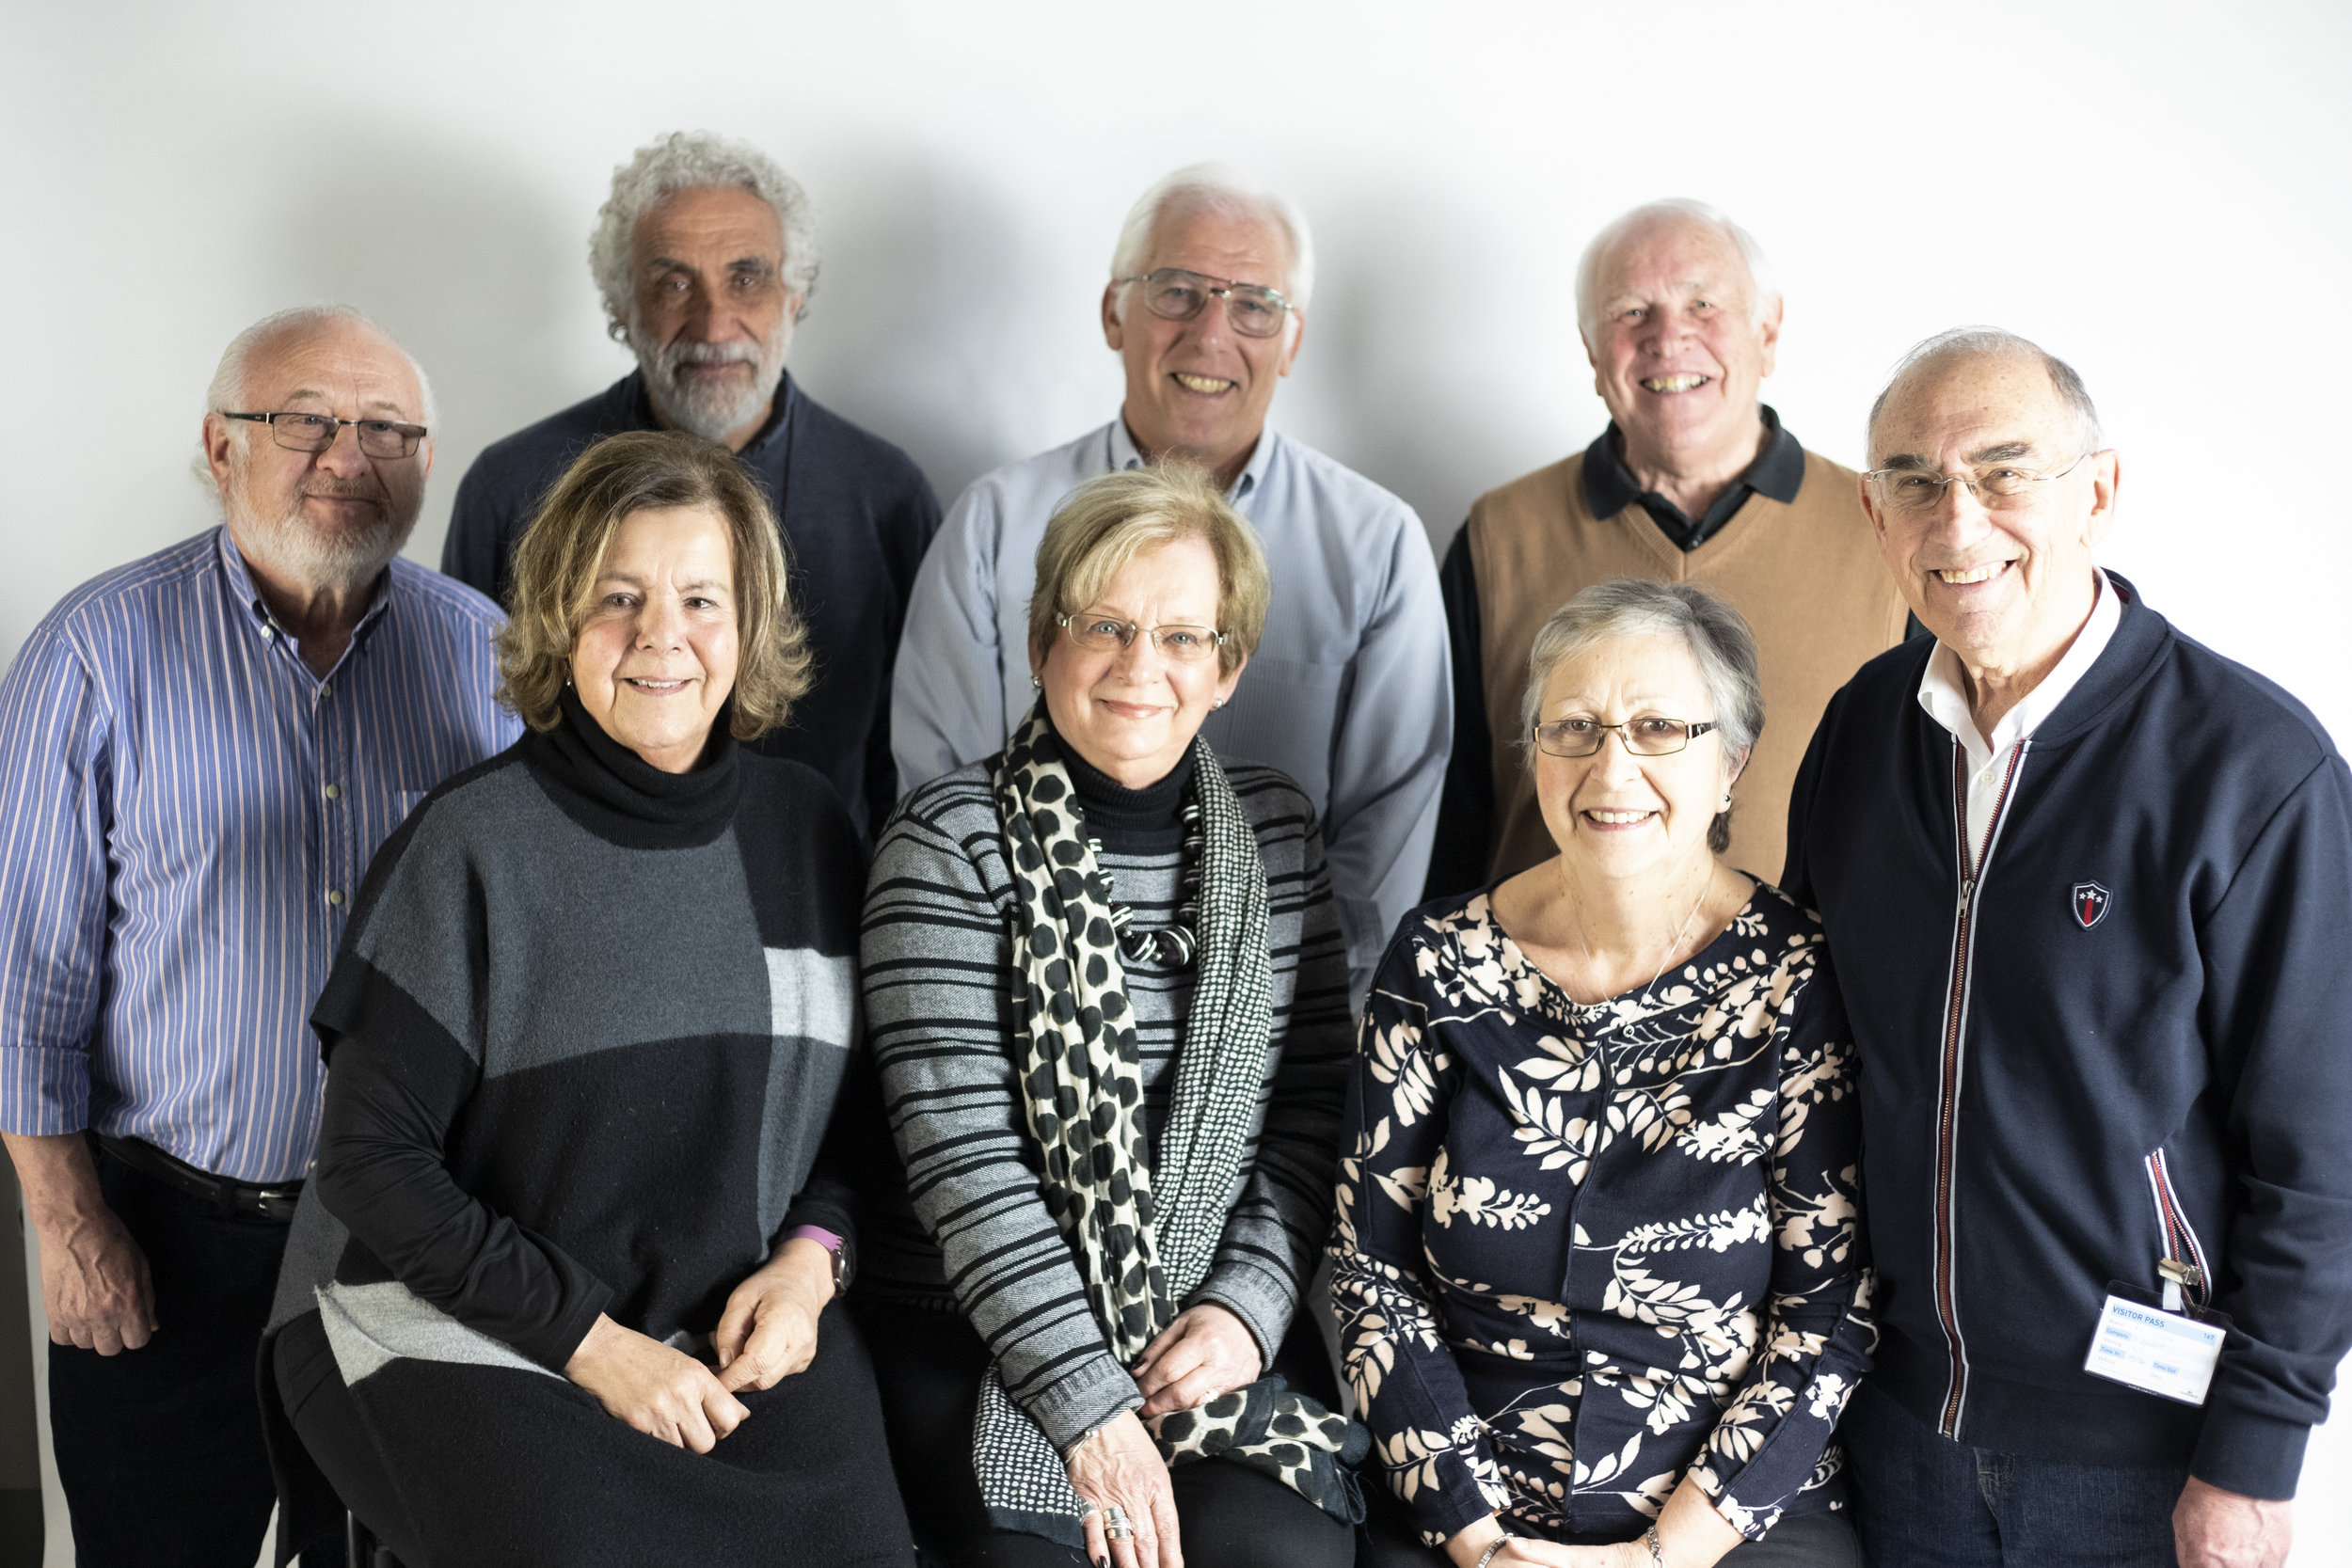 The Brady Photographic Exhibition Committee. Photo taken by Shanette Savage.